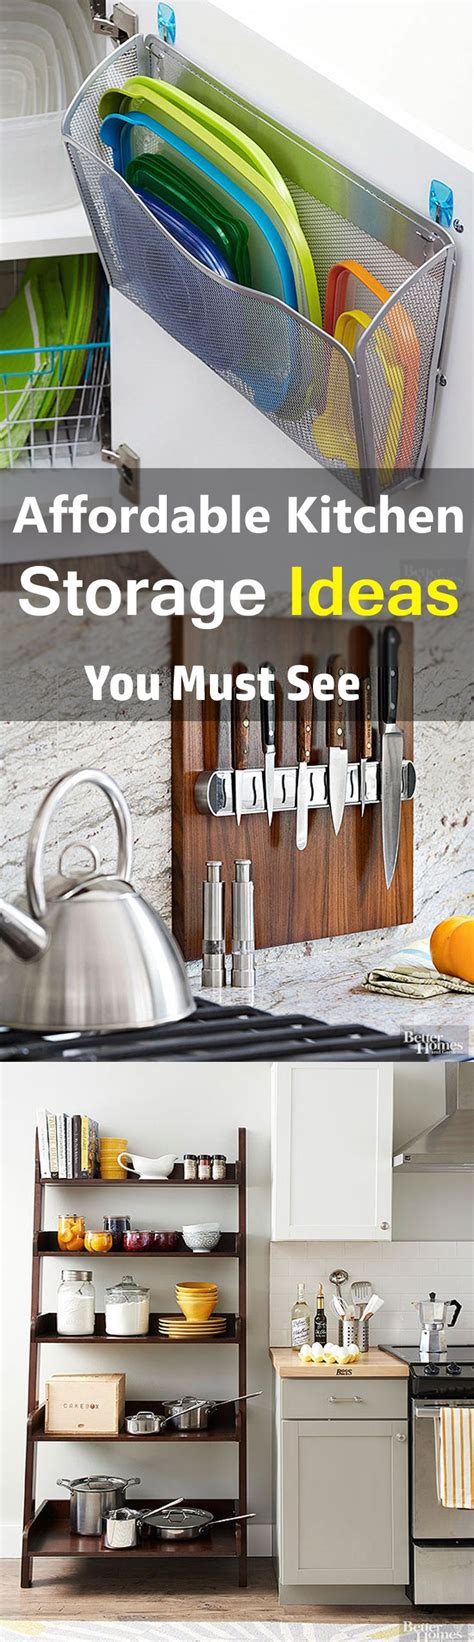 affordable kitchen ideas affordable kitchen storage ideas to organize kitchen well